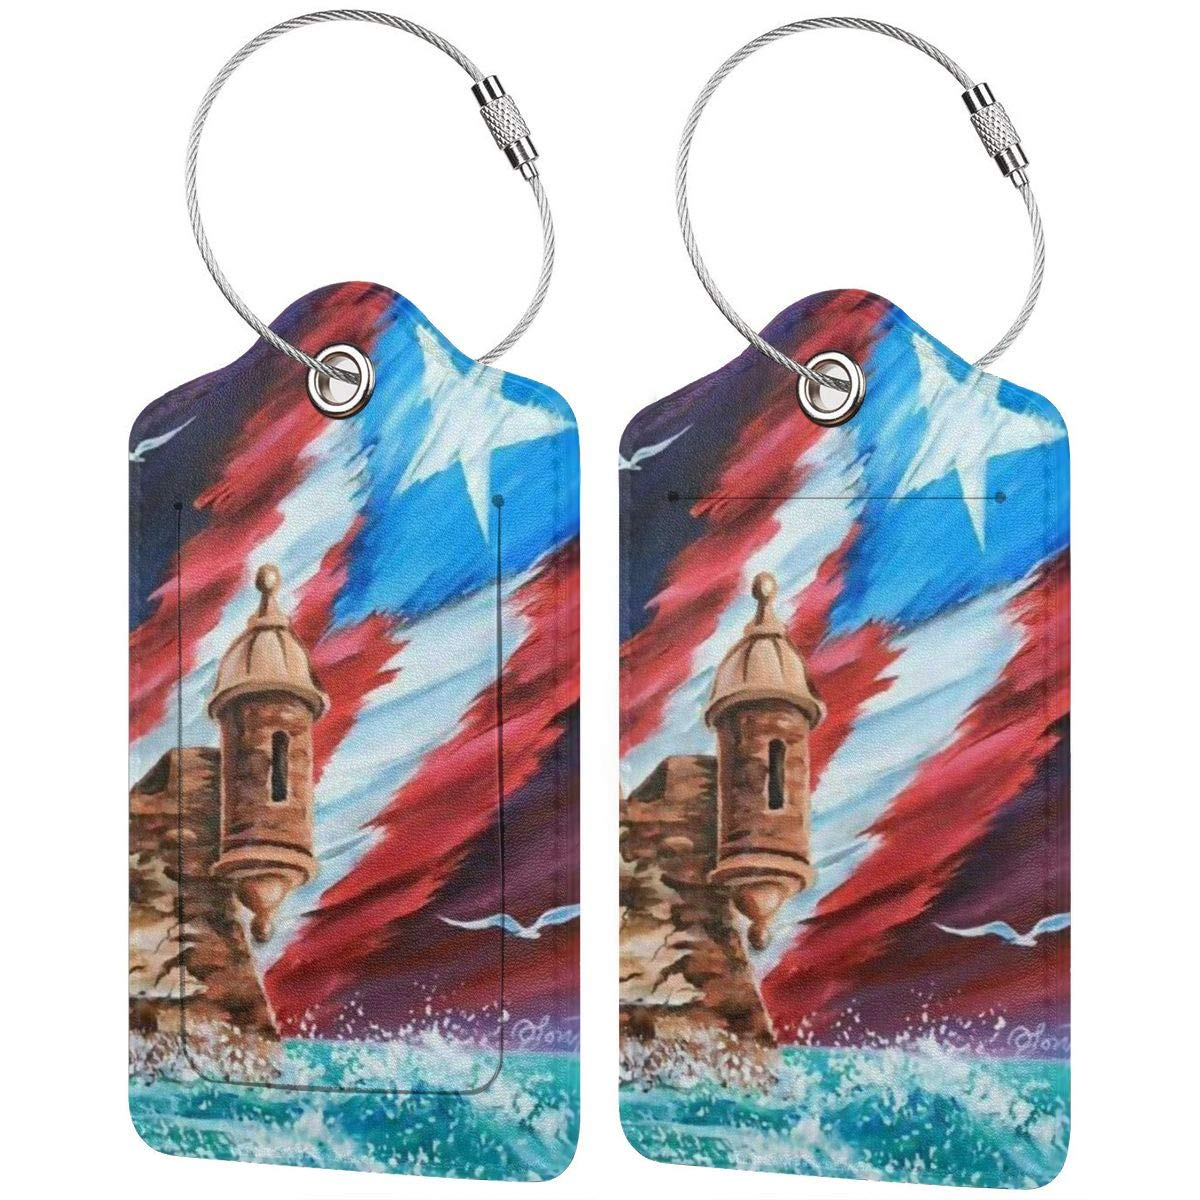 Puerto Rico Flag Leather Luggage Tags Suitcase Tag Travel Bag Labels With Privacy Cover For Men Women 2 Pack 4 Pack